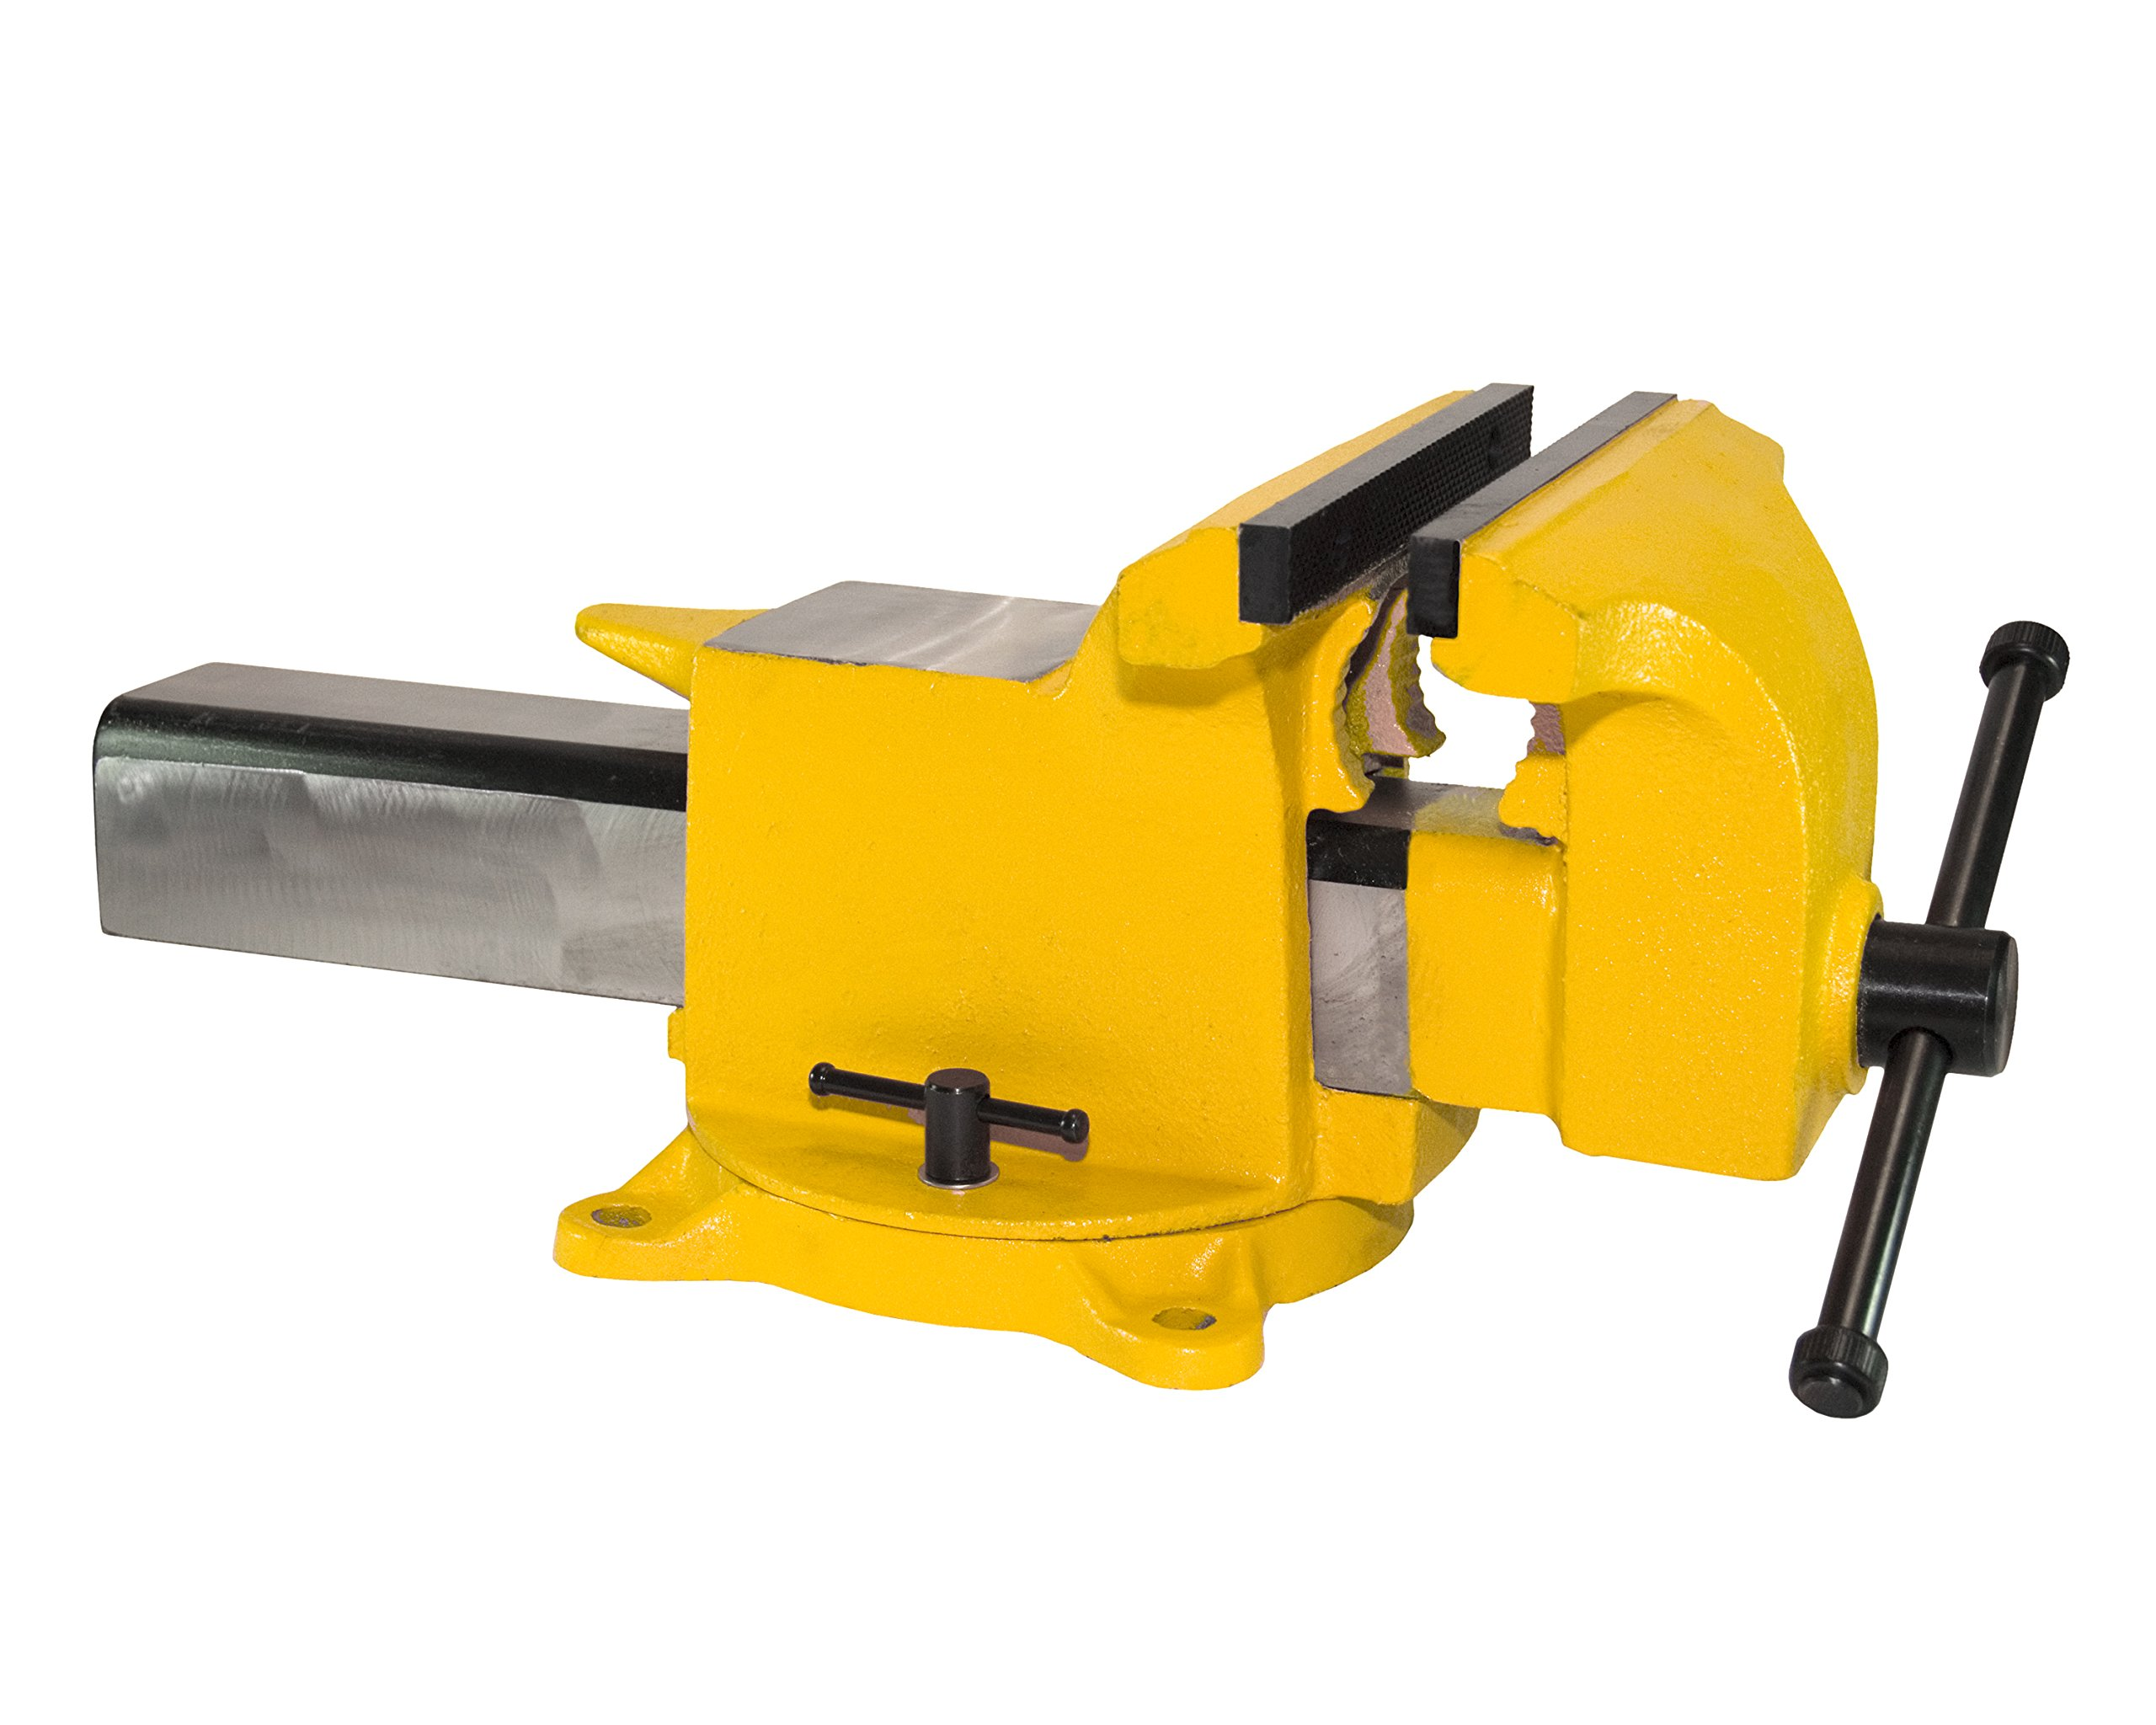 Yost Vises 906-HV 6'' High-Visibility Heavy Duty Steel Bench Vise